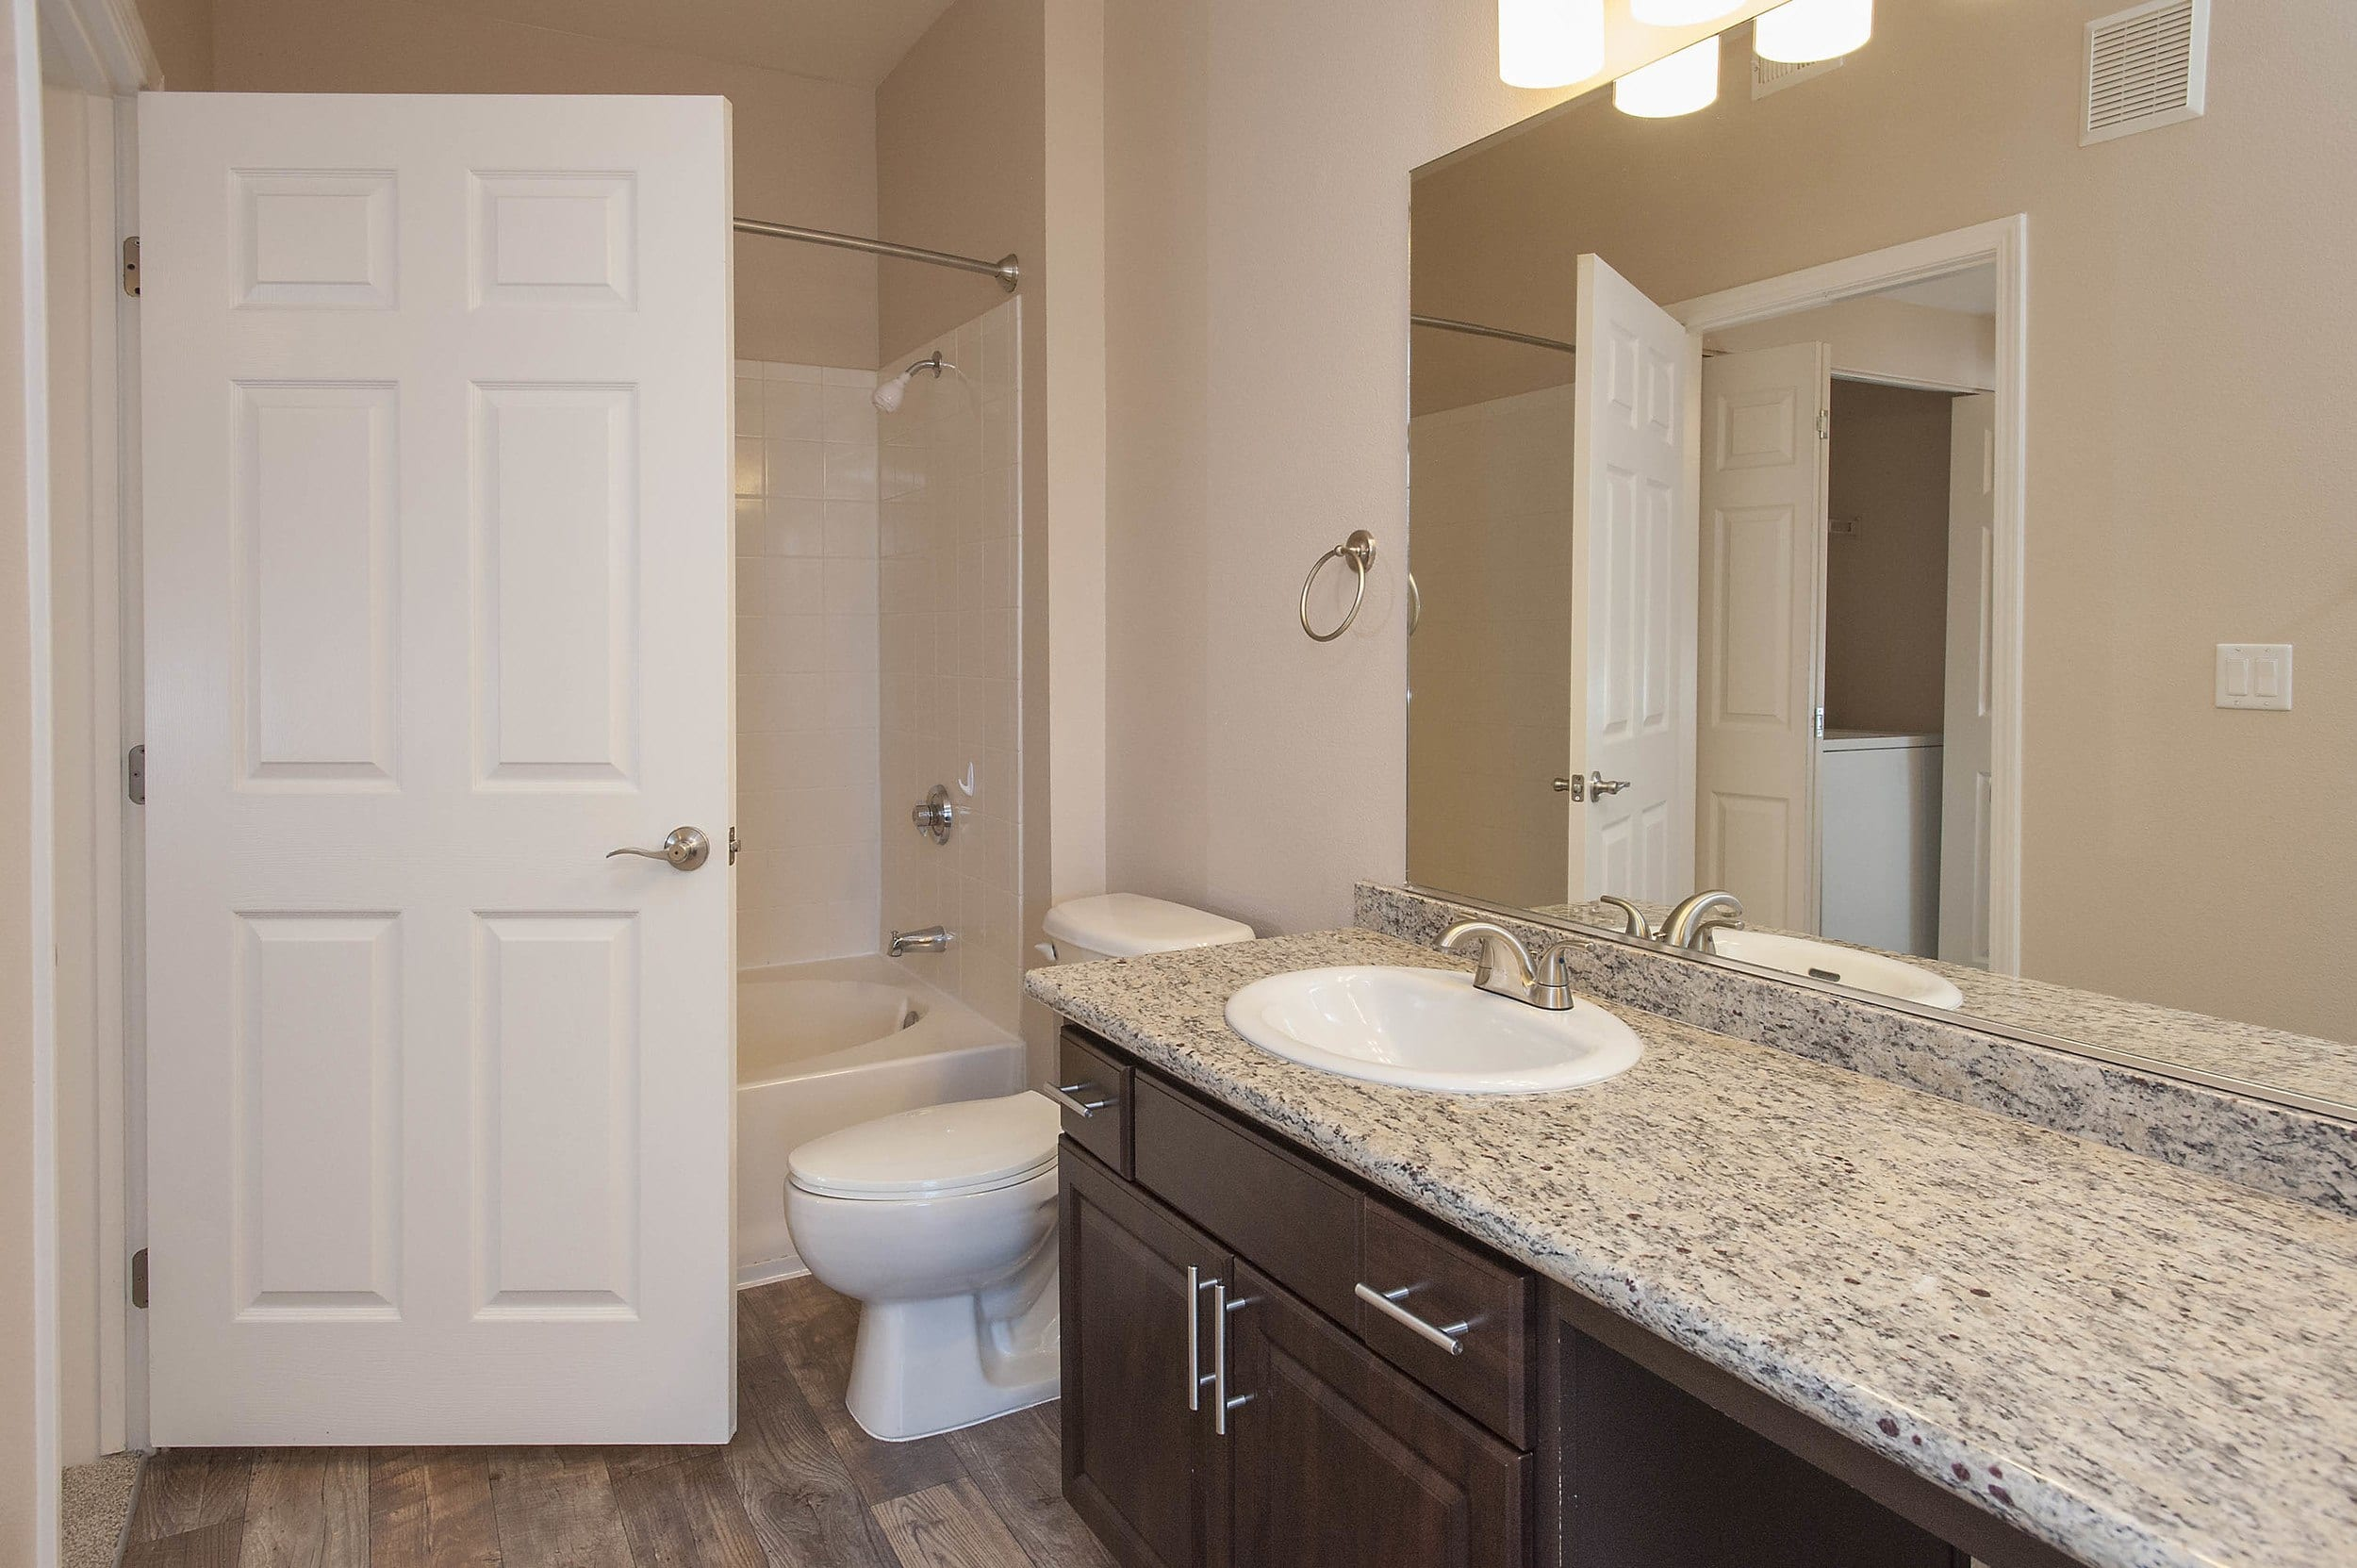 Bathroom at The Vintage at South Meadows Condominium Rentals in Reno